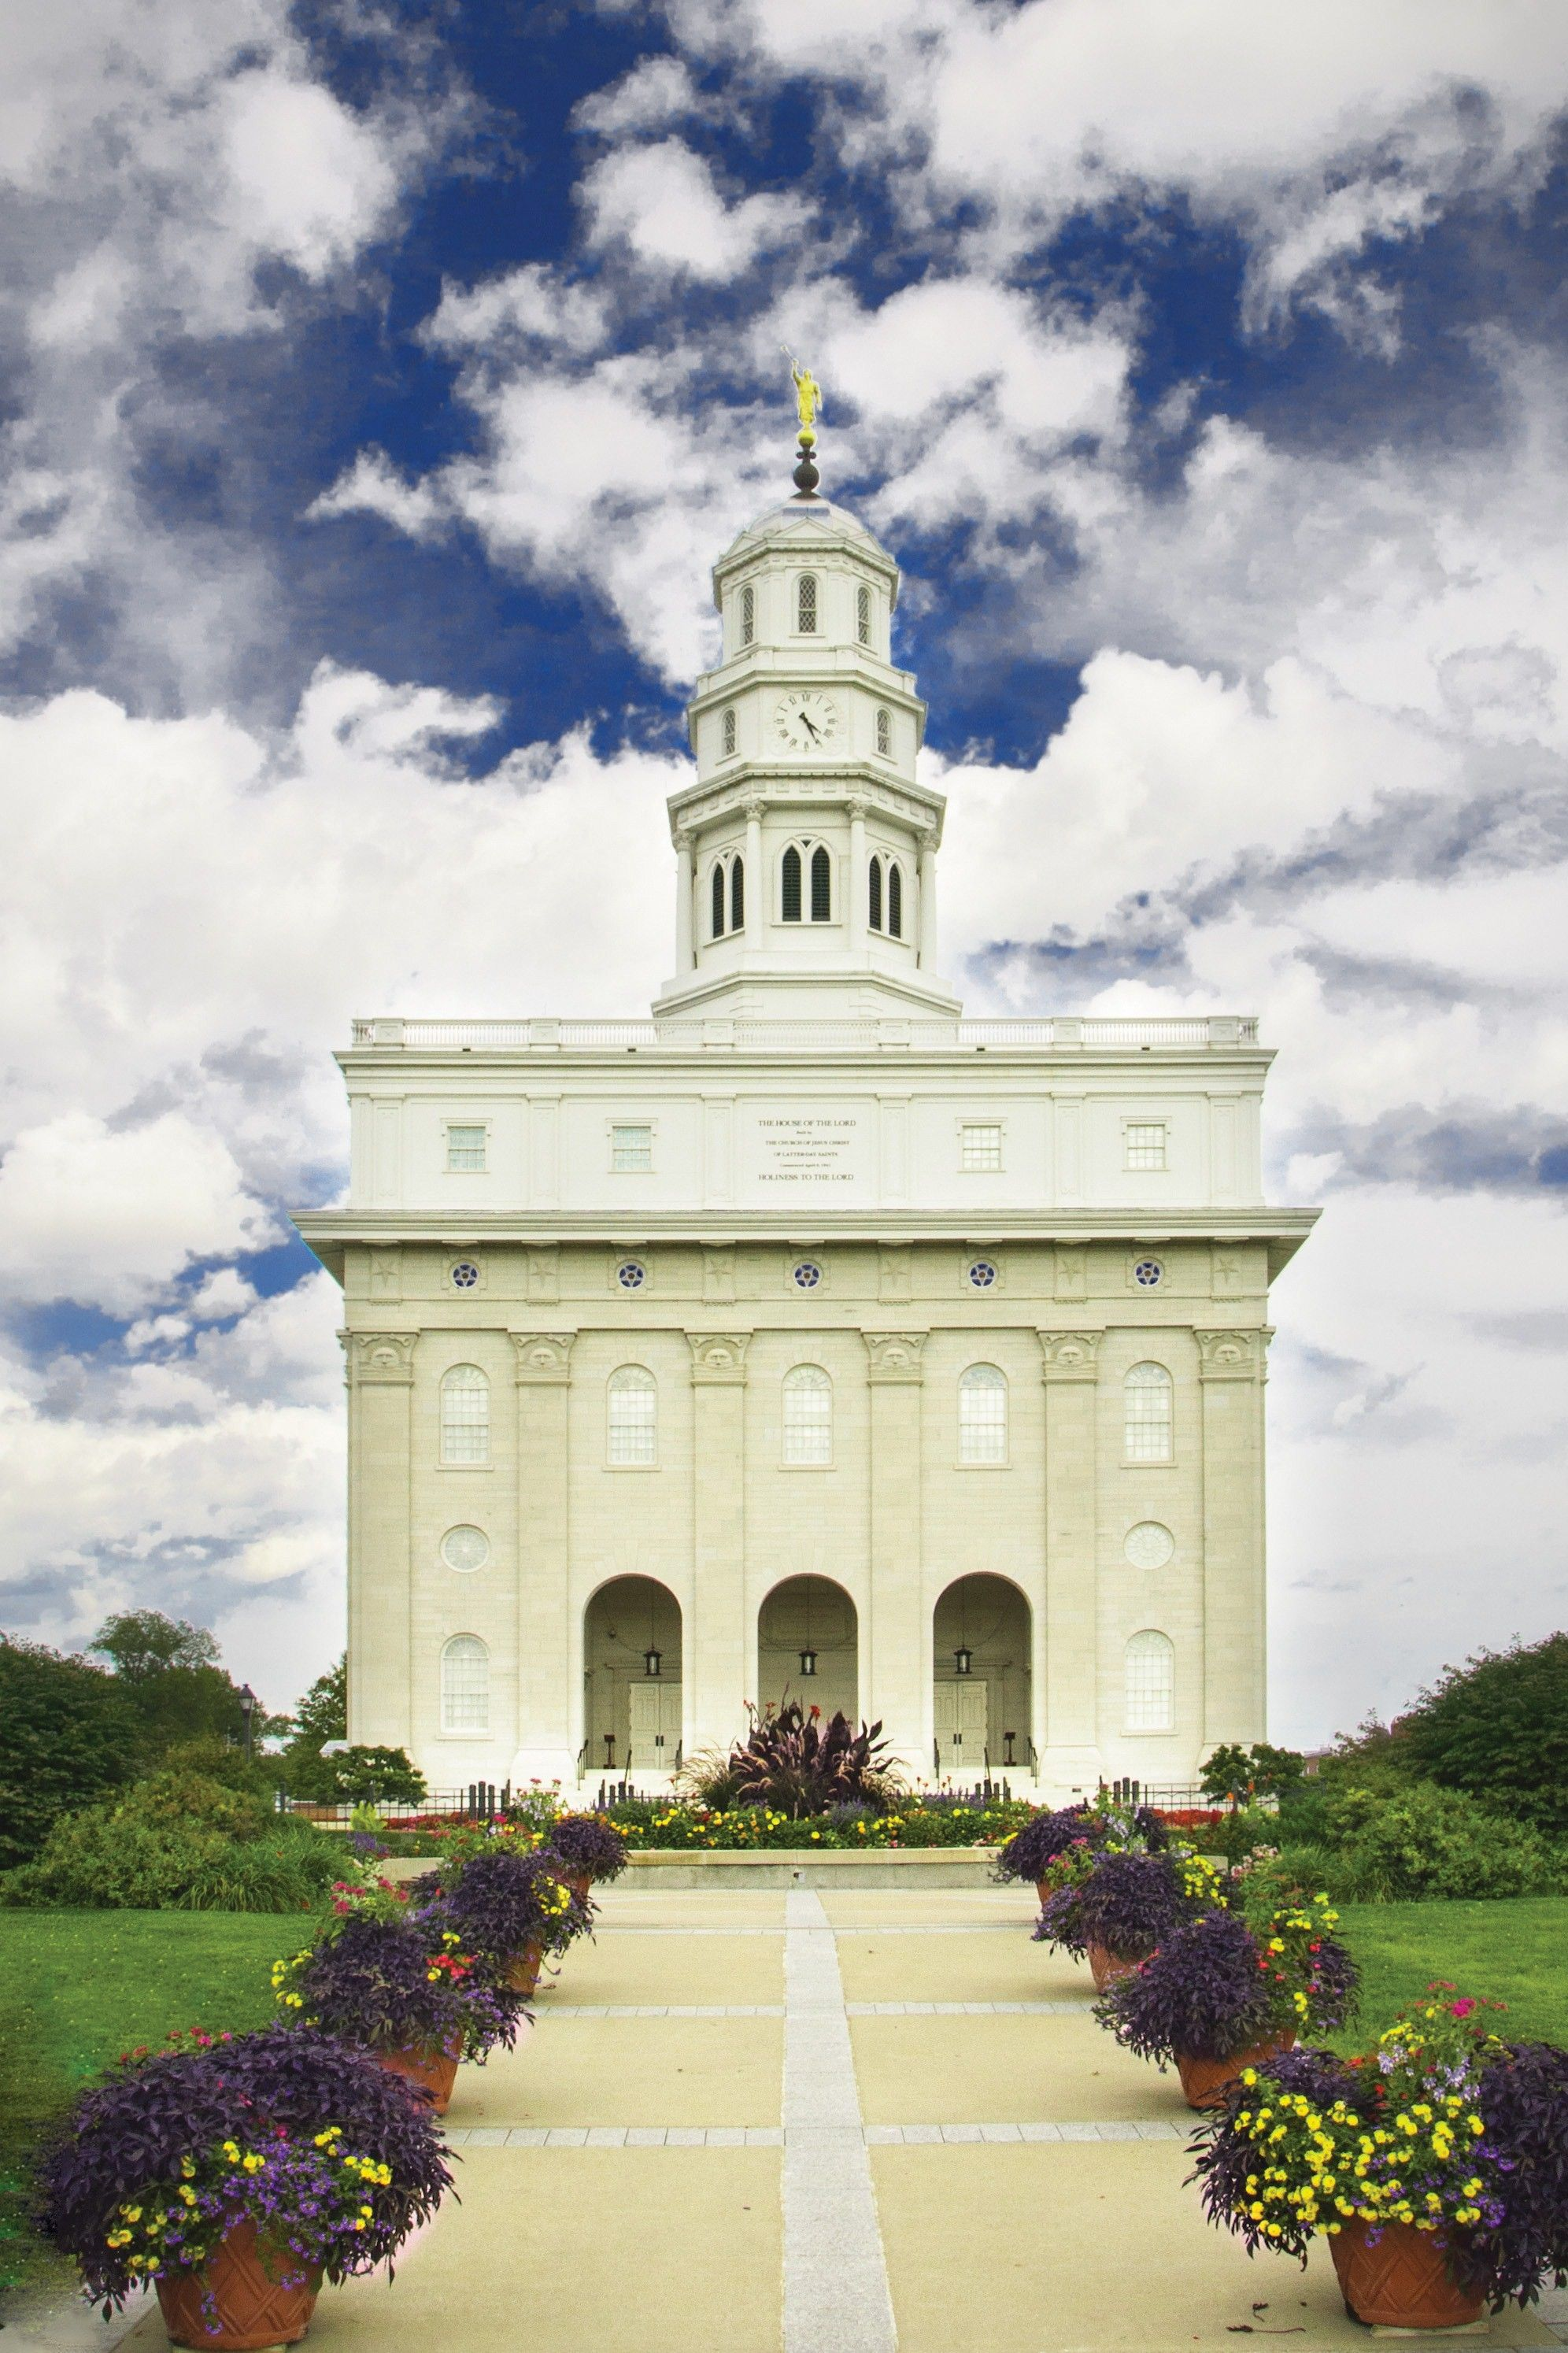 The Nauvoo Illinois Temple, including the entrance and scenery.